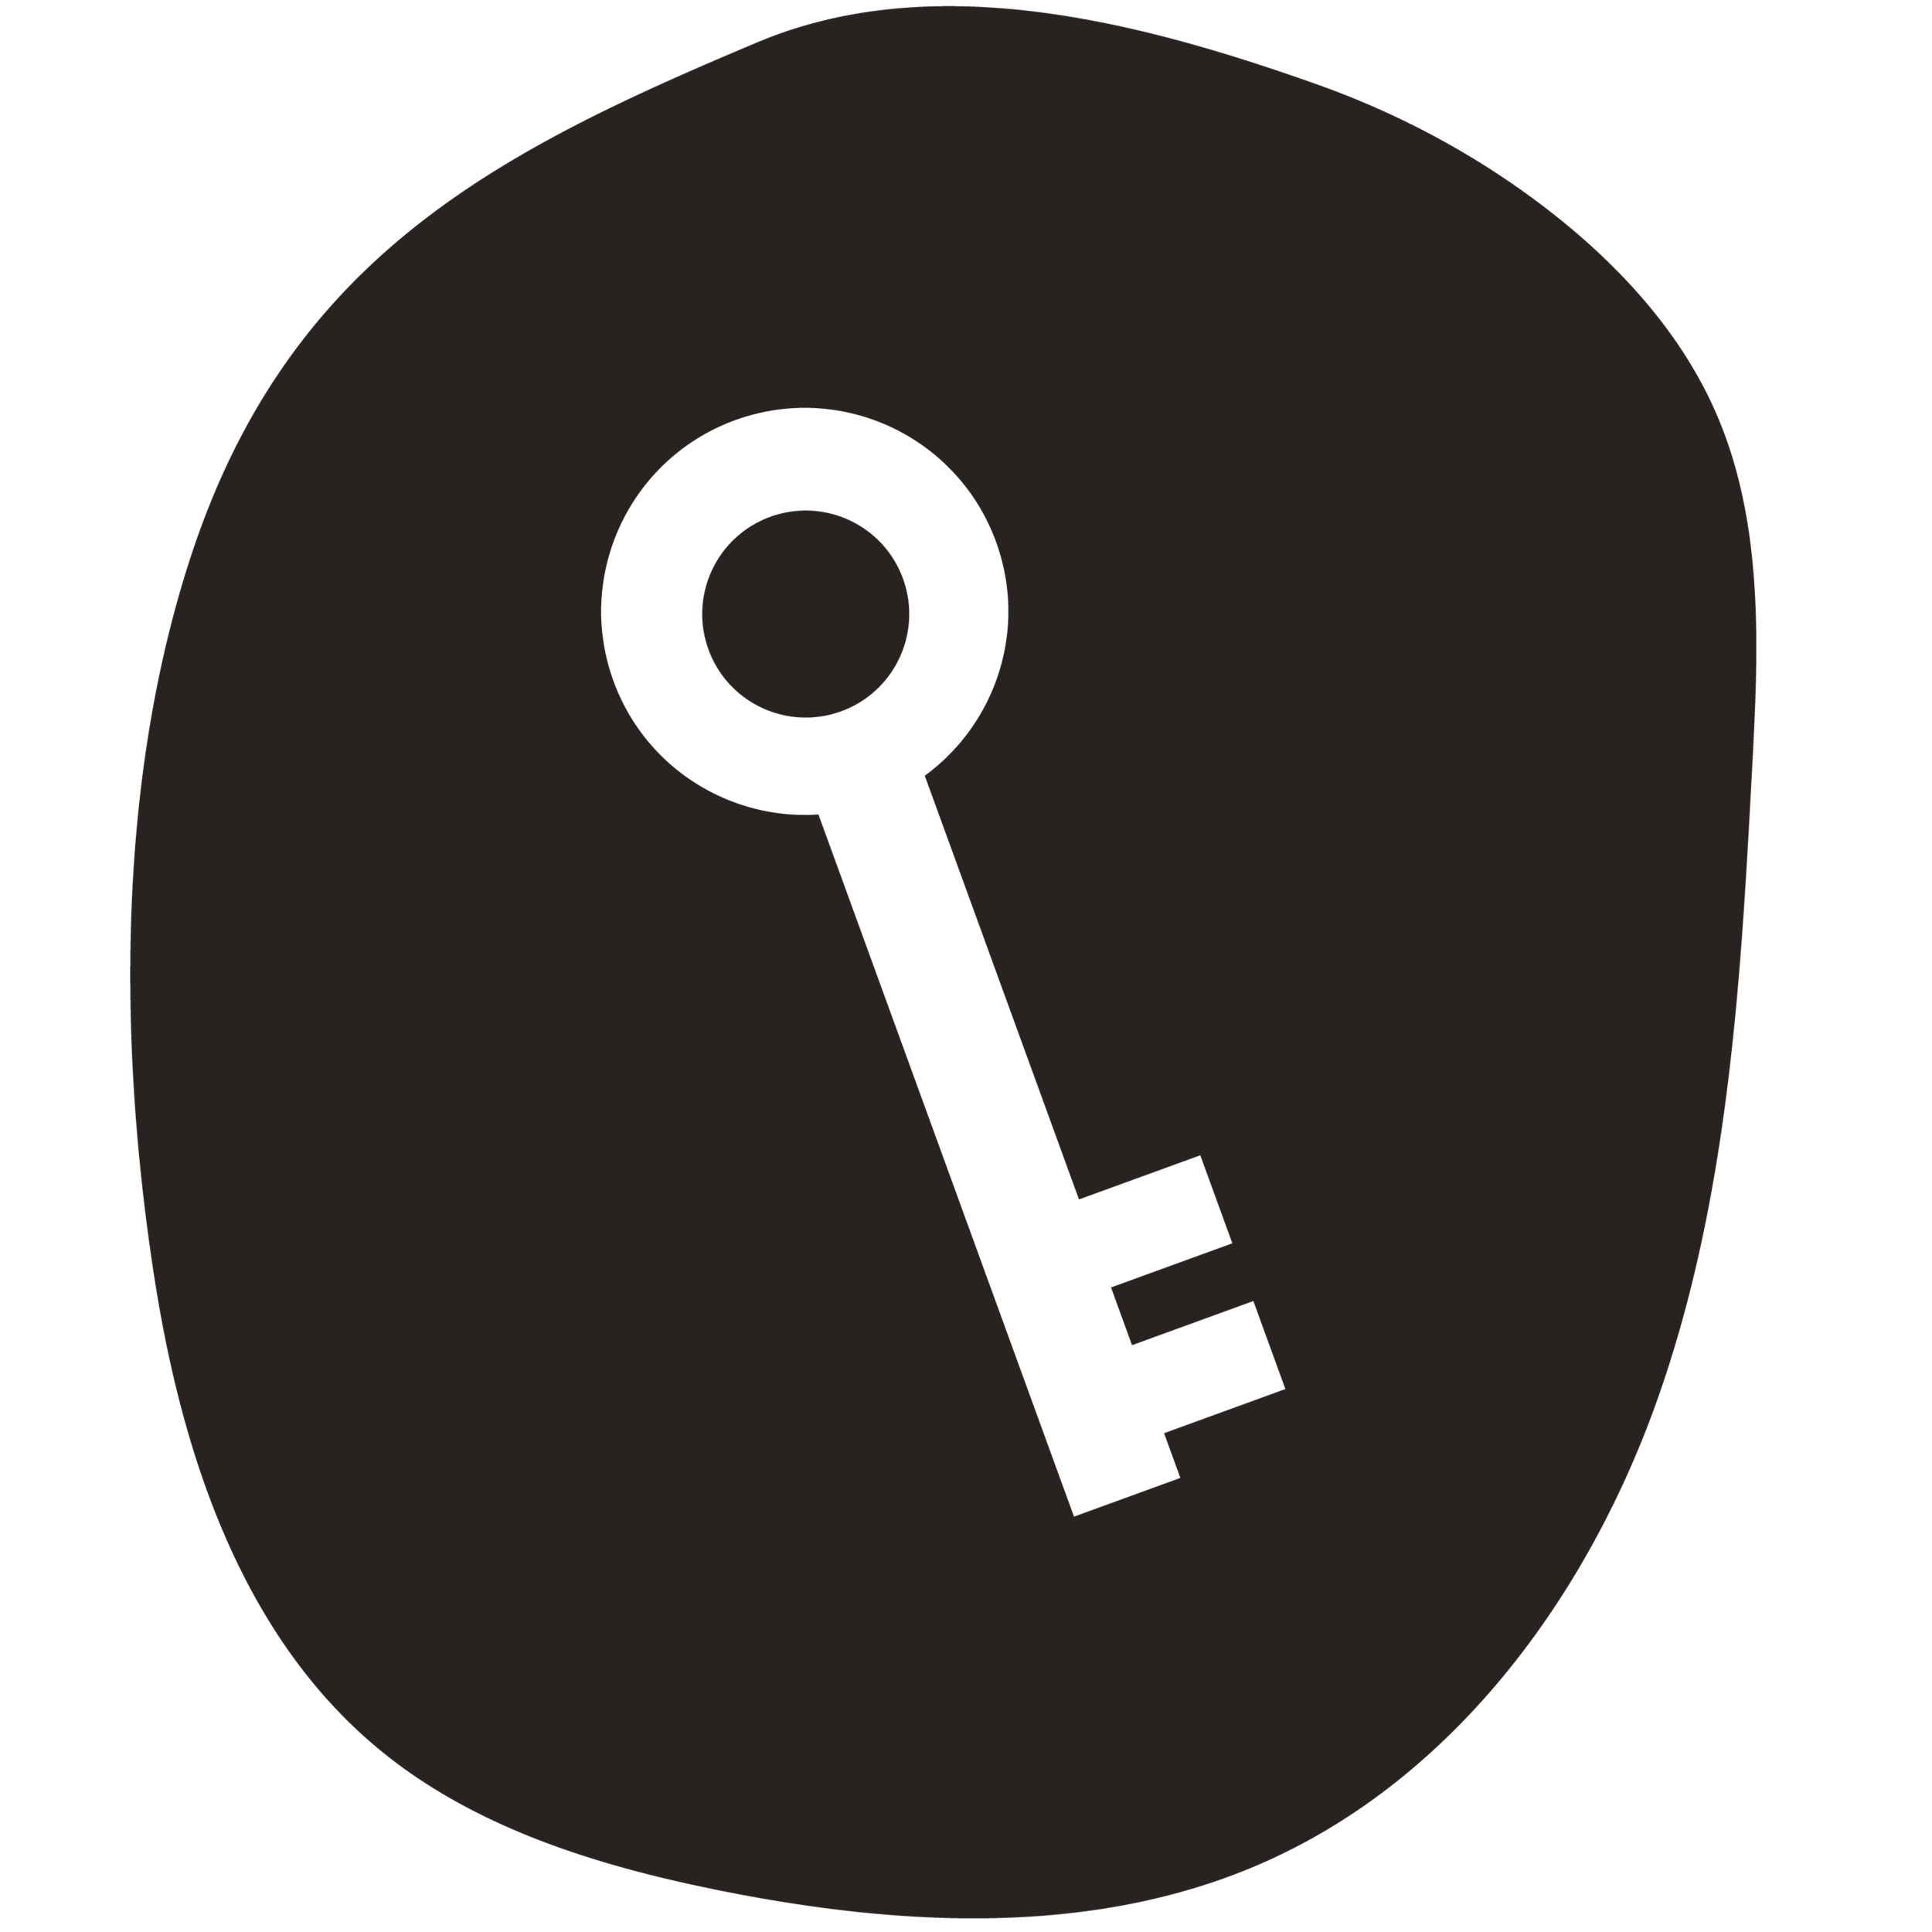 Icon-11.png